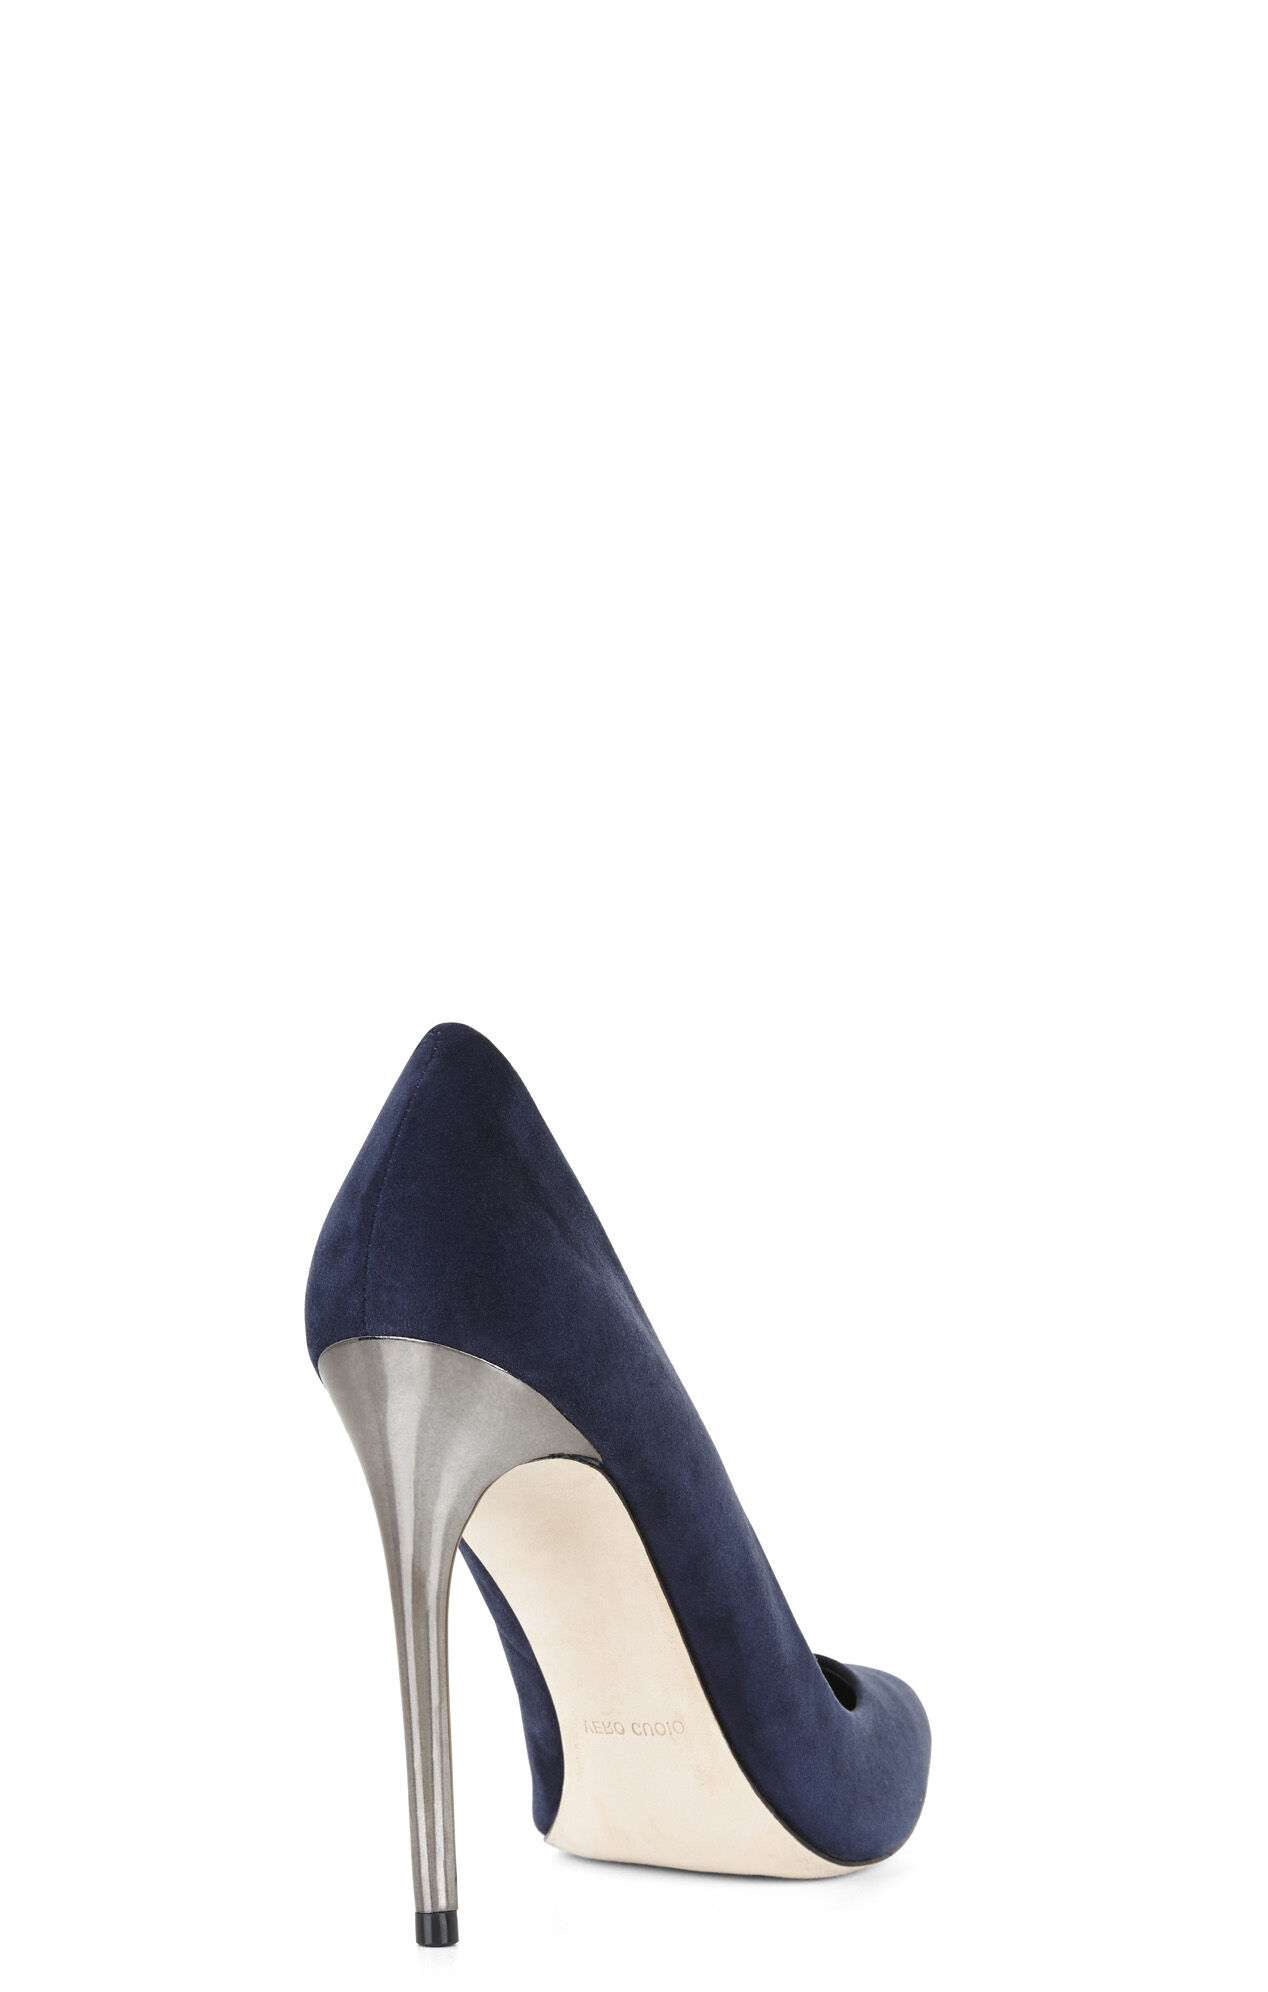 Able High-Heel Pump